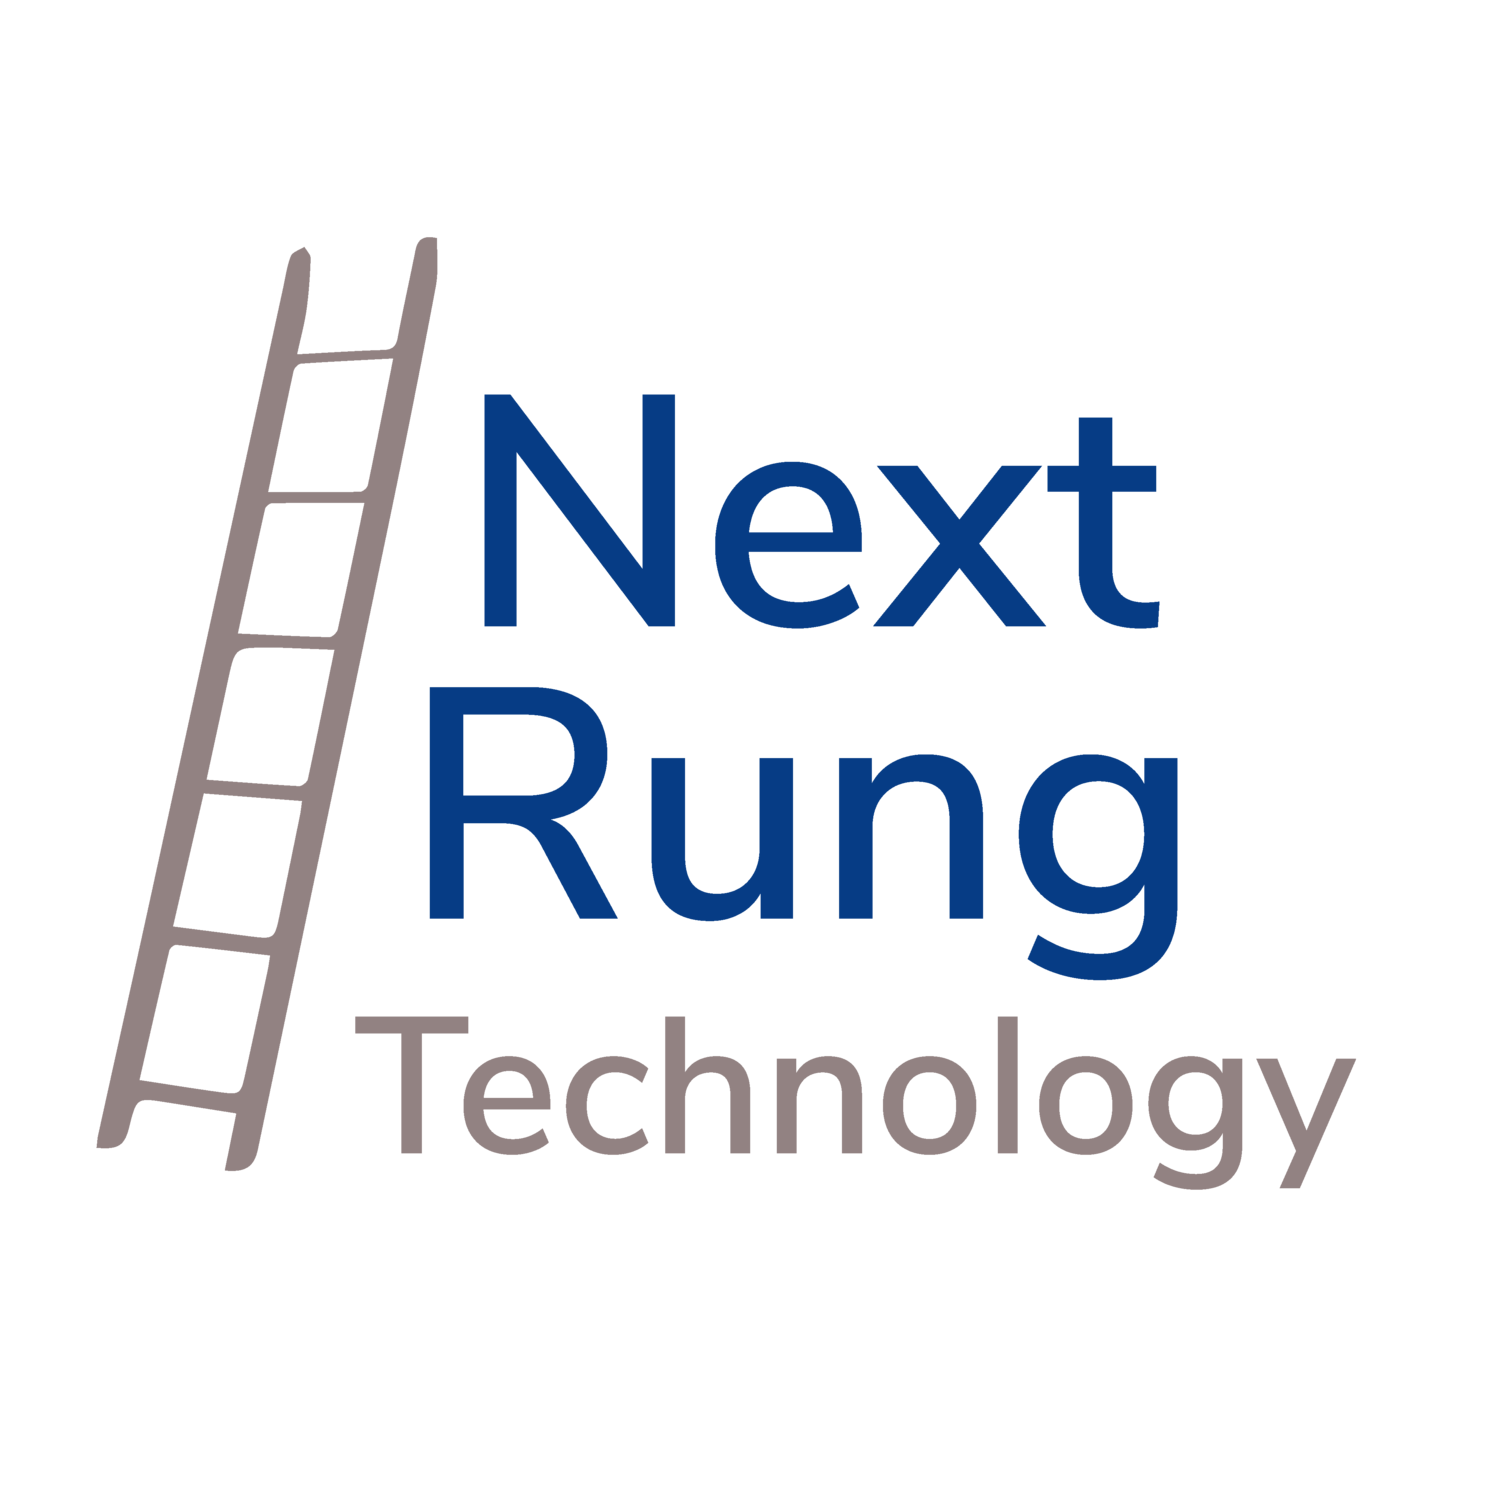 Next Rung Technology